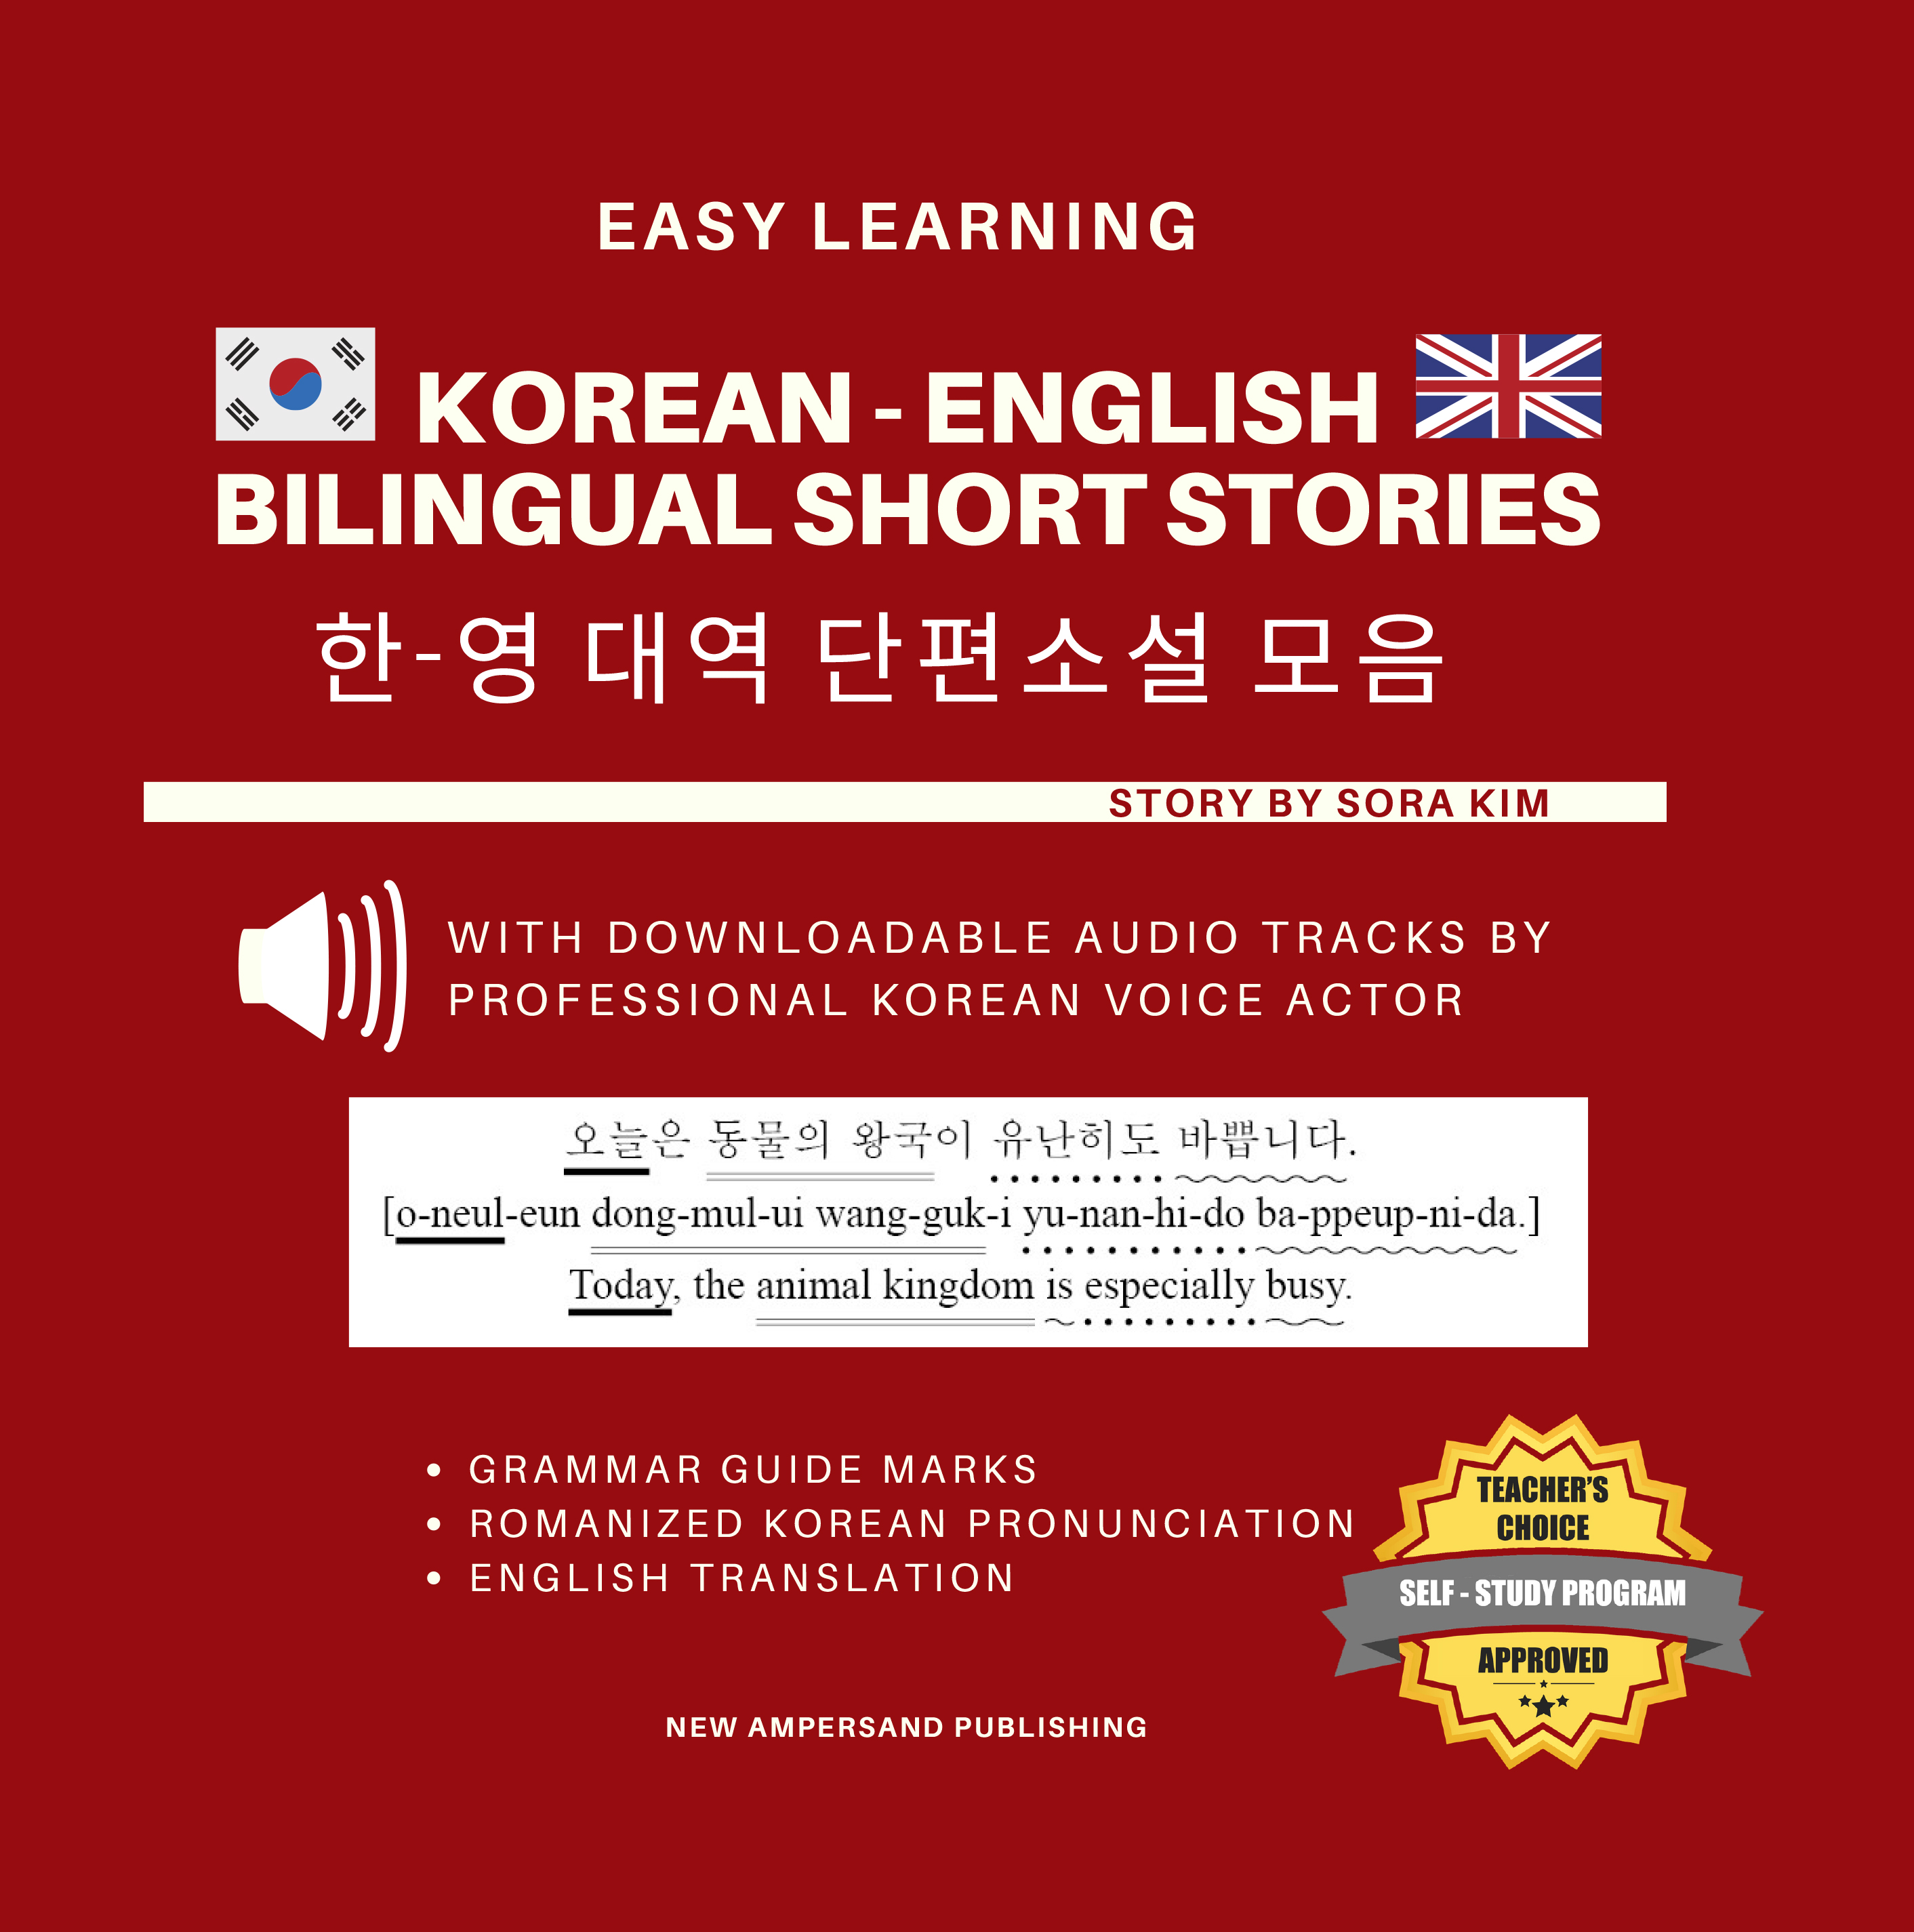 KOREAN-ENGLISH SHORT STORIES – AUDIO FILES – NEW AMPERSAND